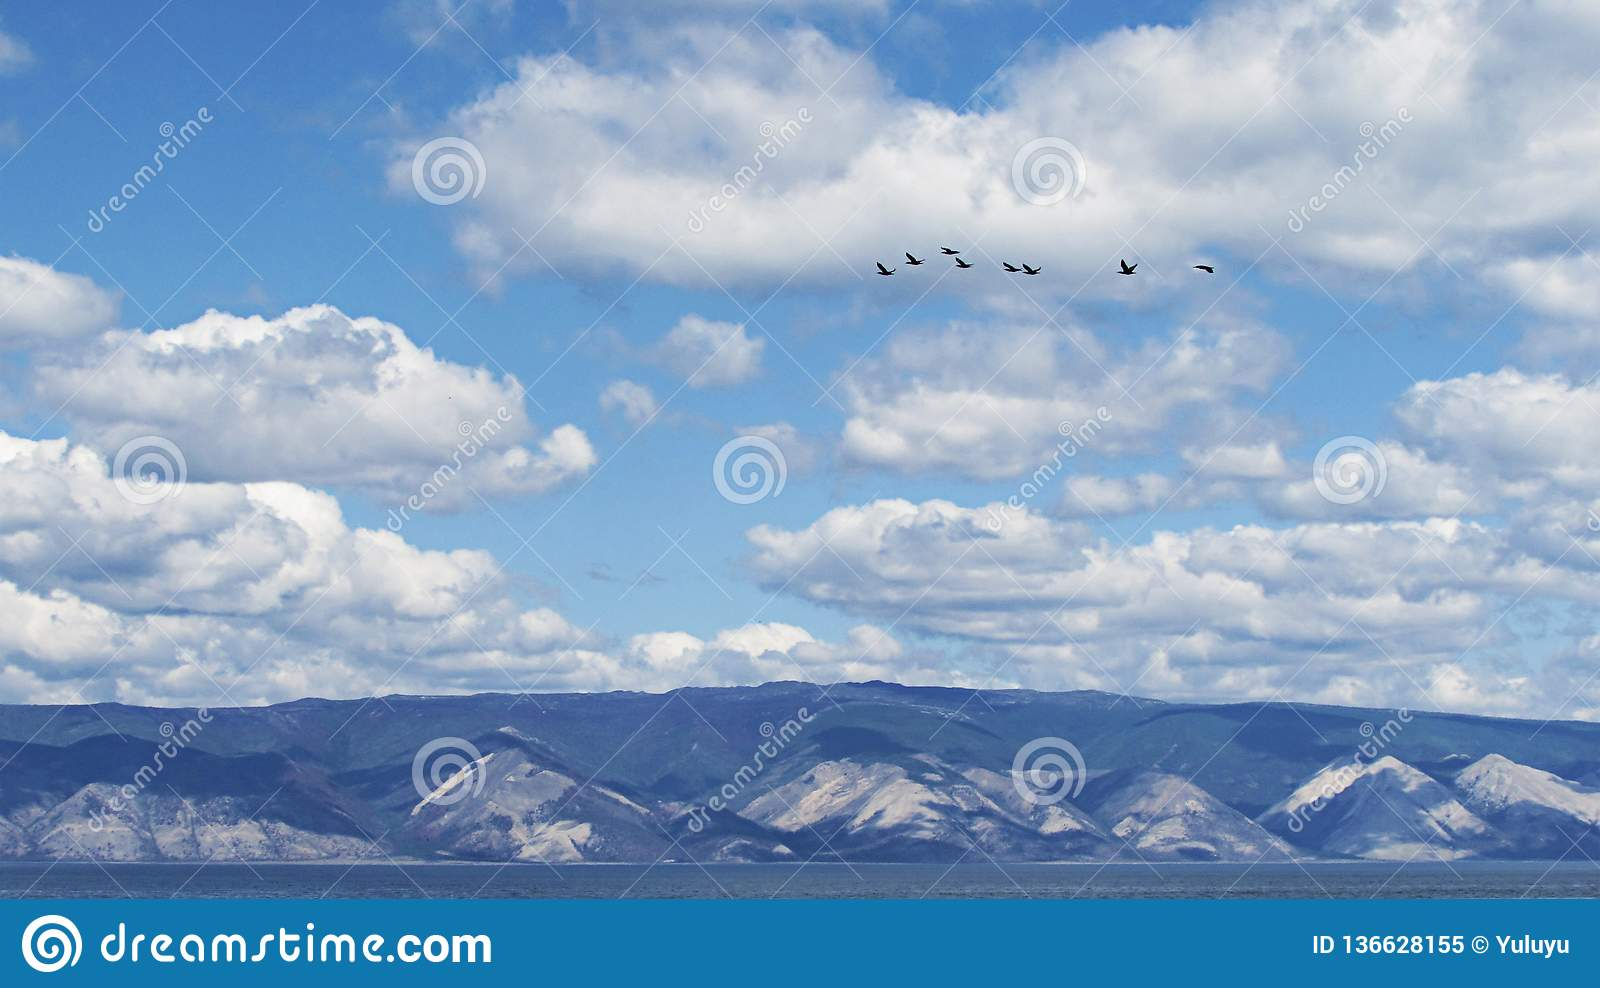 Cloudy sky on the background of the mountain coast with a flock of birds flying in the heaven.